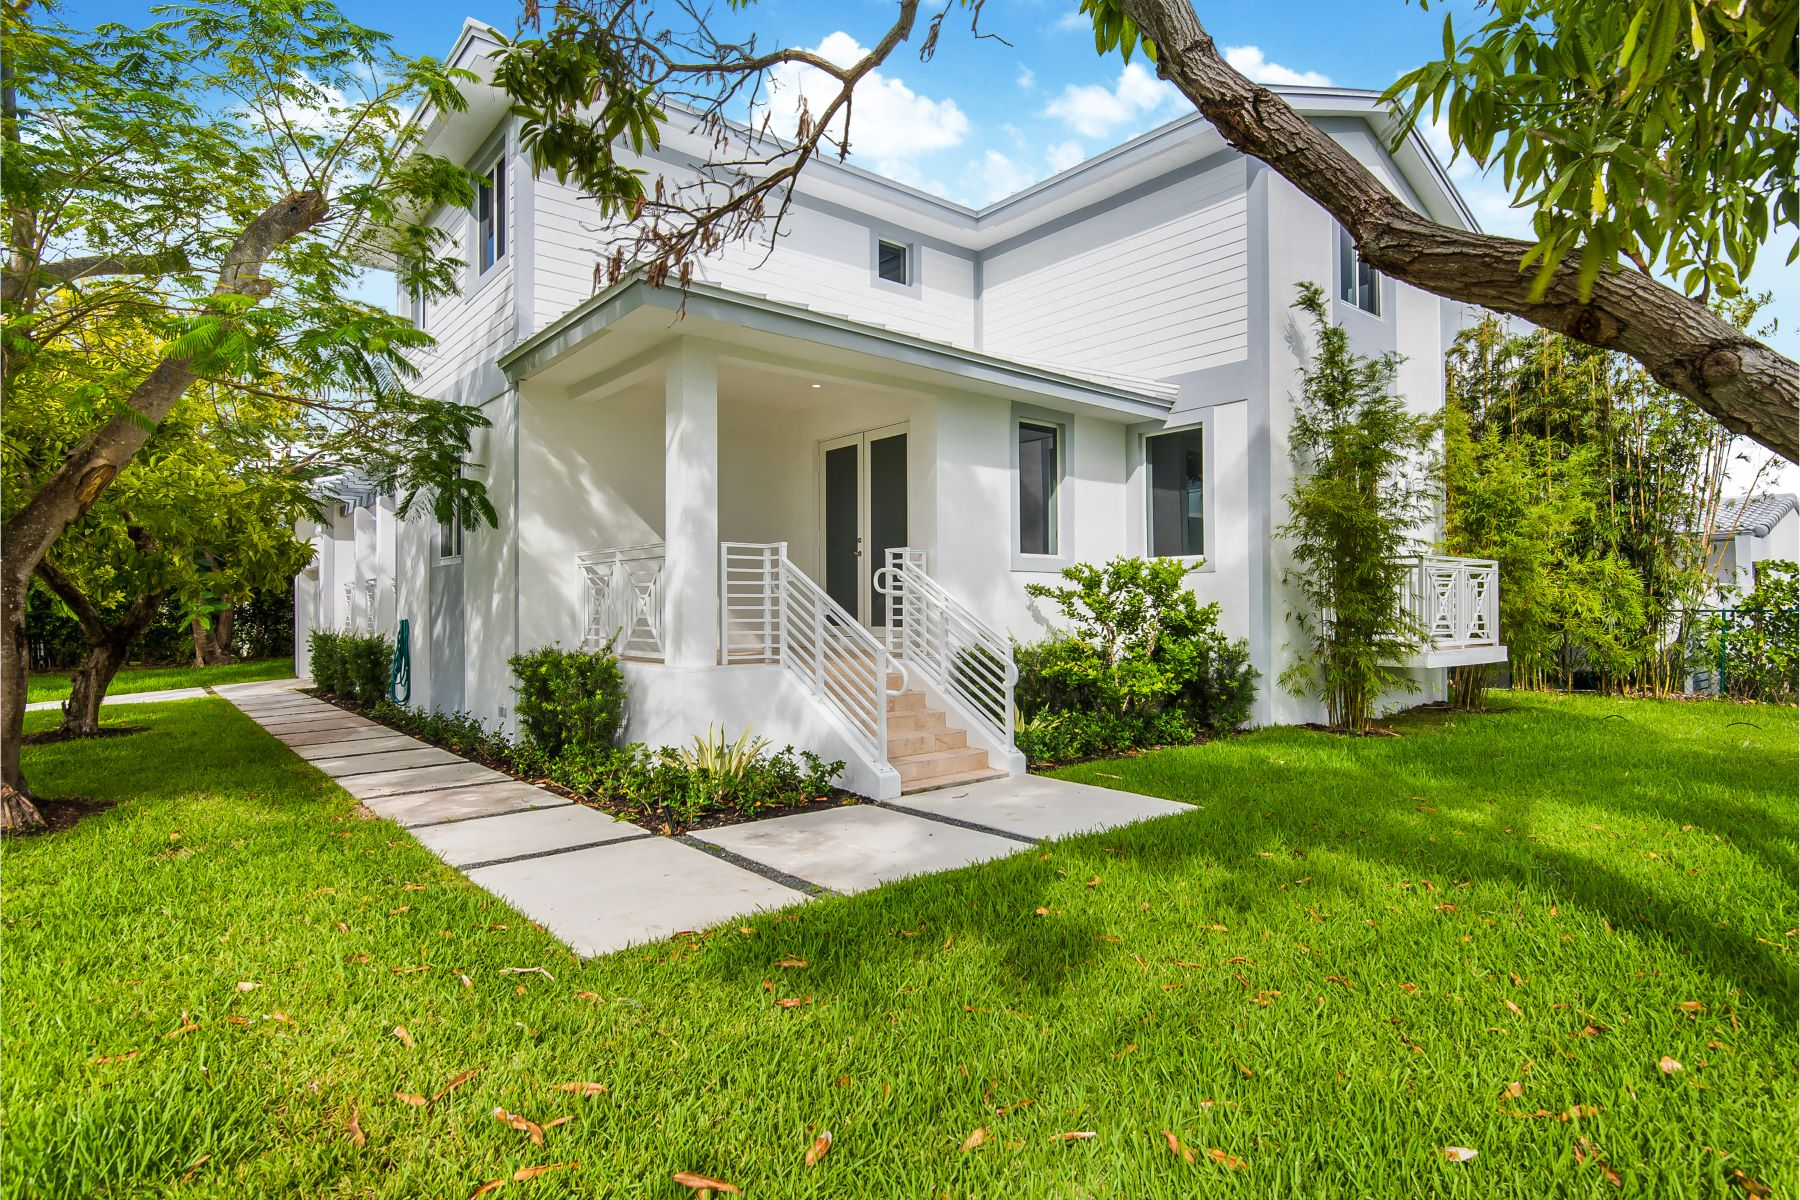 Single Family Homes for Sale at 901 88th St Surfside, Florida 33154 United States